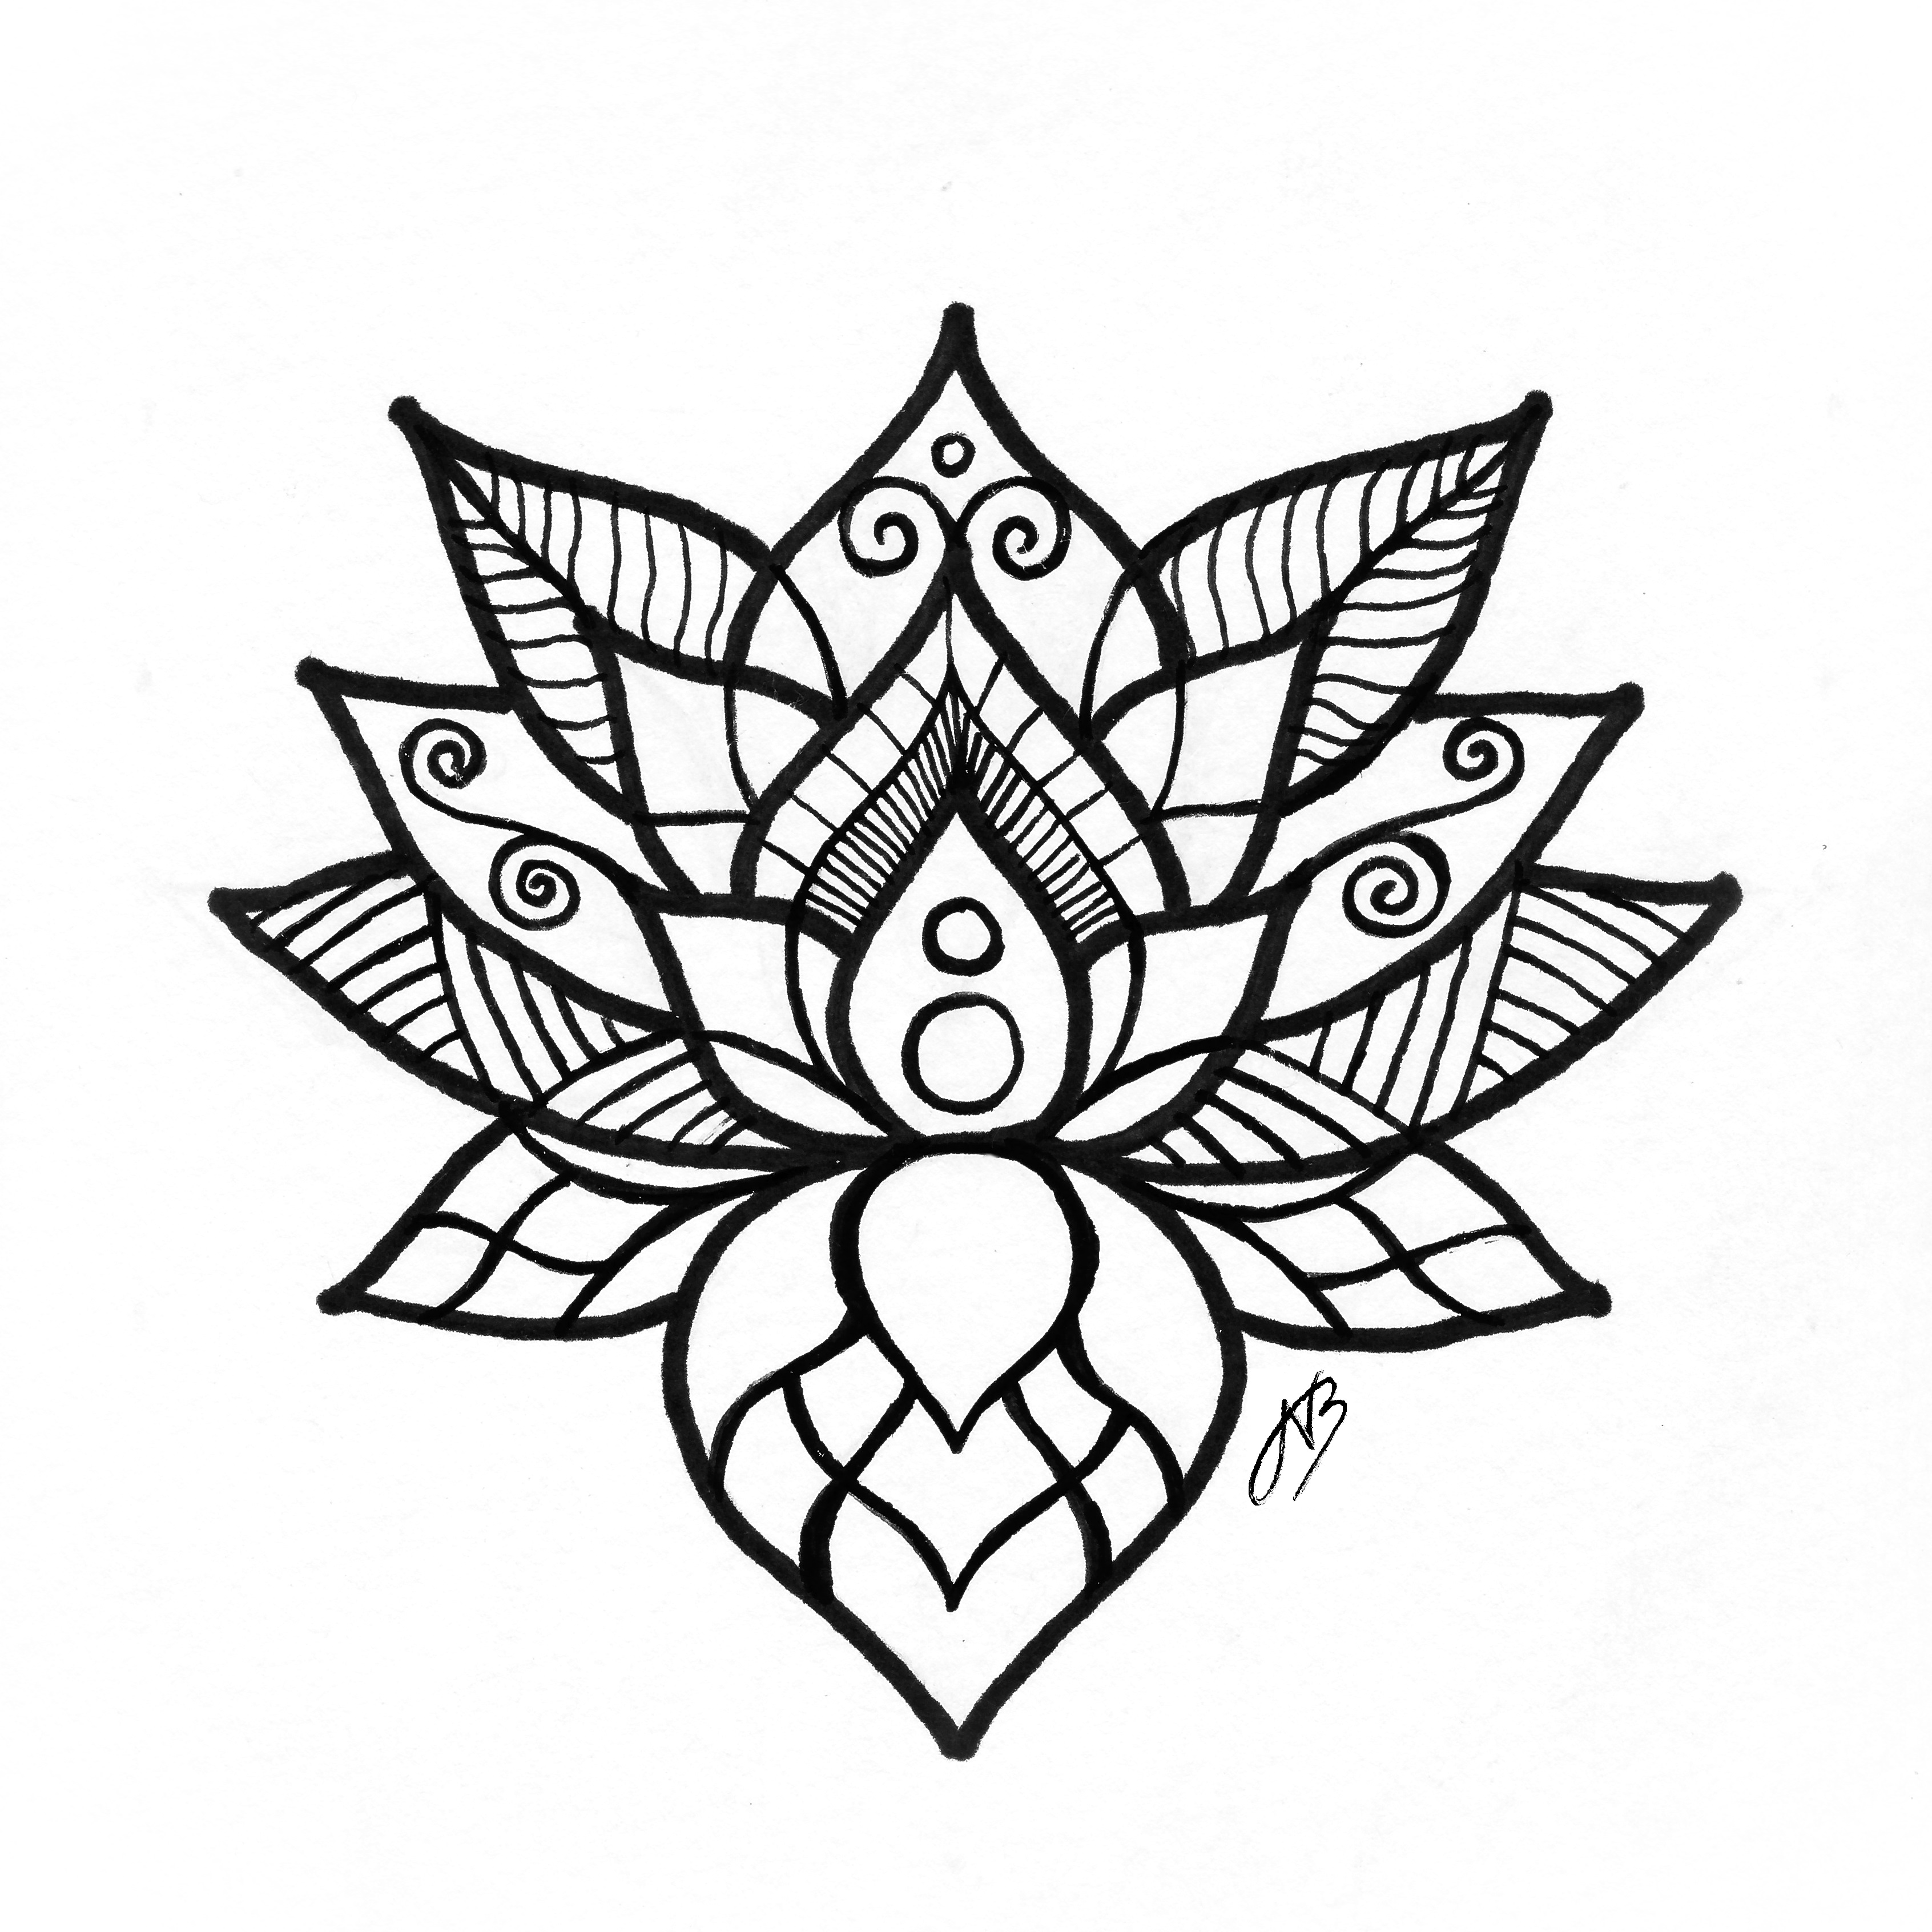 mandala outlines how to draw a mandala in concepts concepts app medium outlines mandala